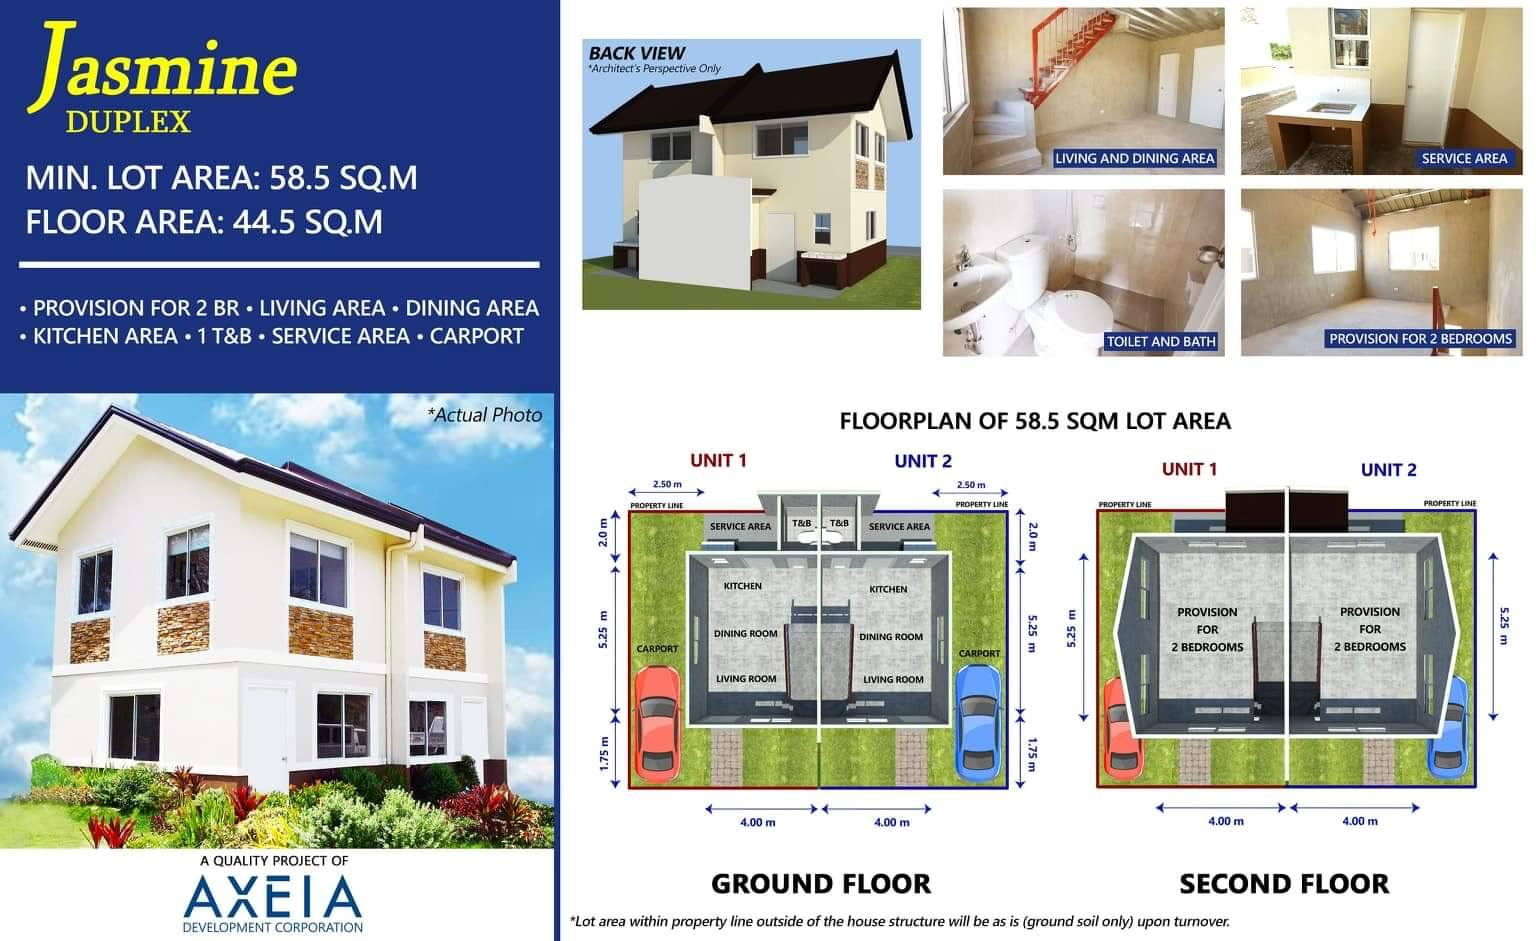 jasmine-duplex-the-palm-residences-pag-ibig-rent-houses-for-sale-tanza-cavite